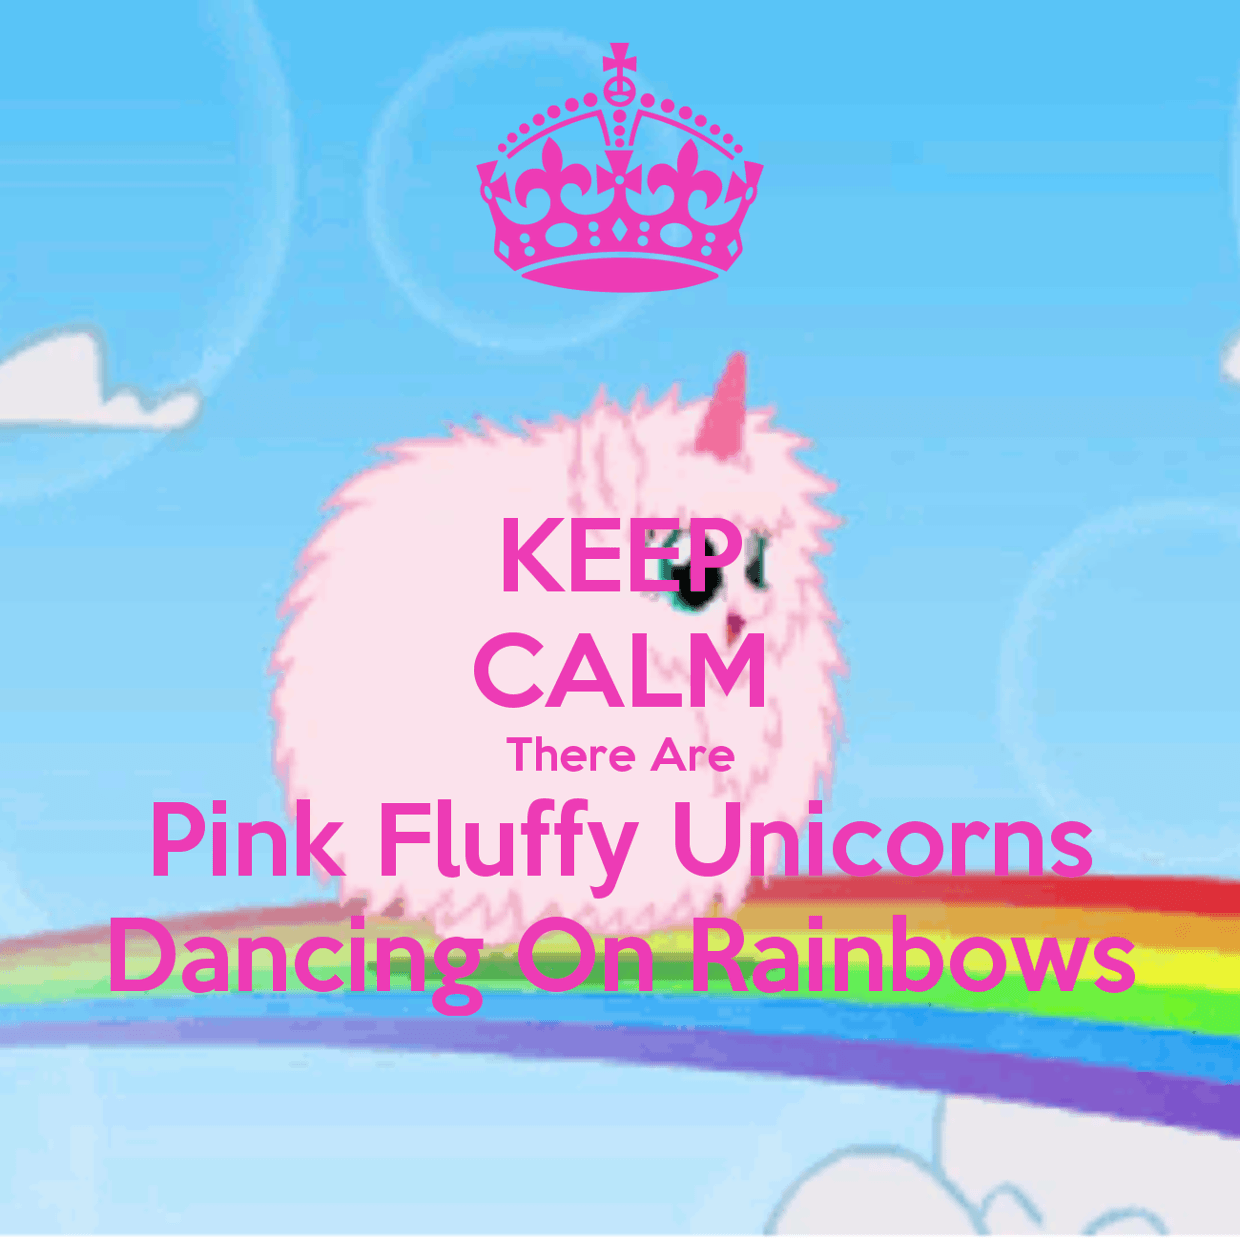 Pink Fluffy Unicorns Dancing On Rainbows Wallpapers